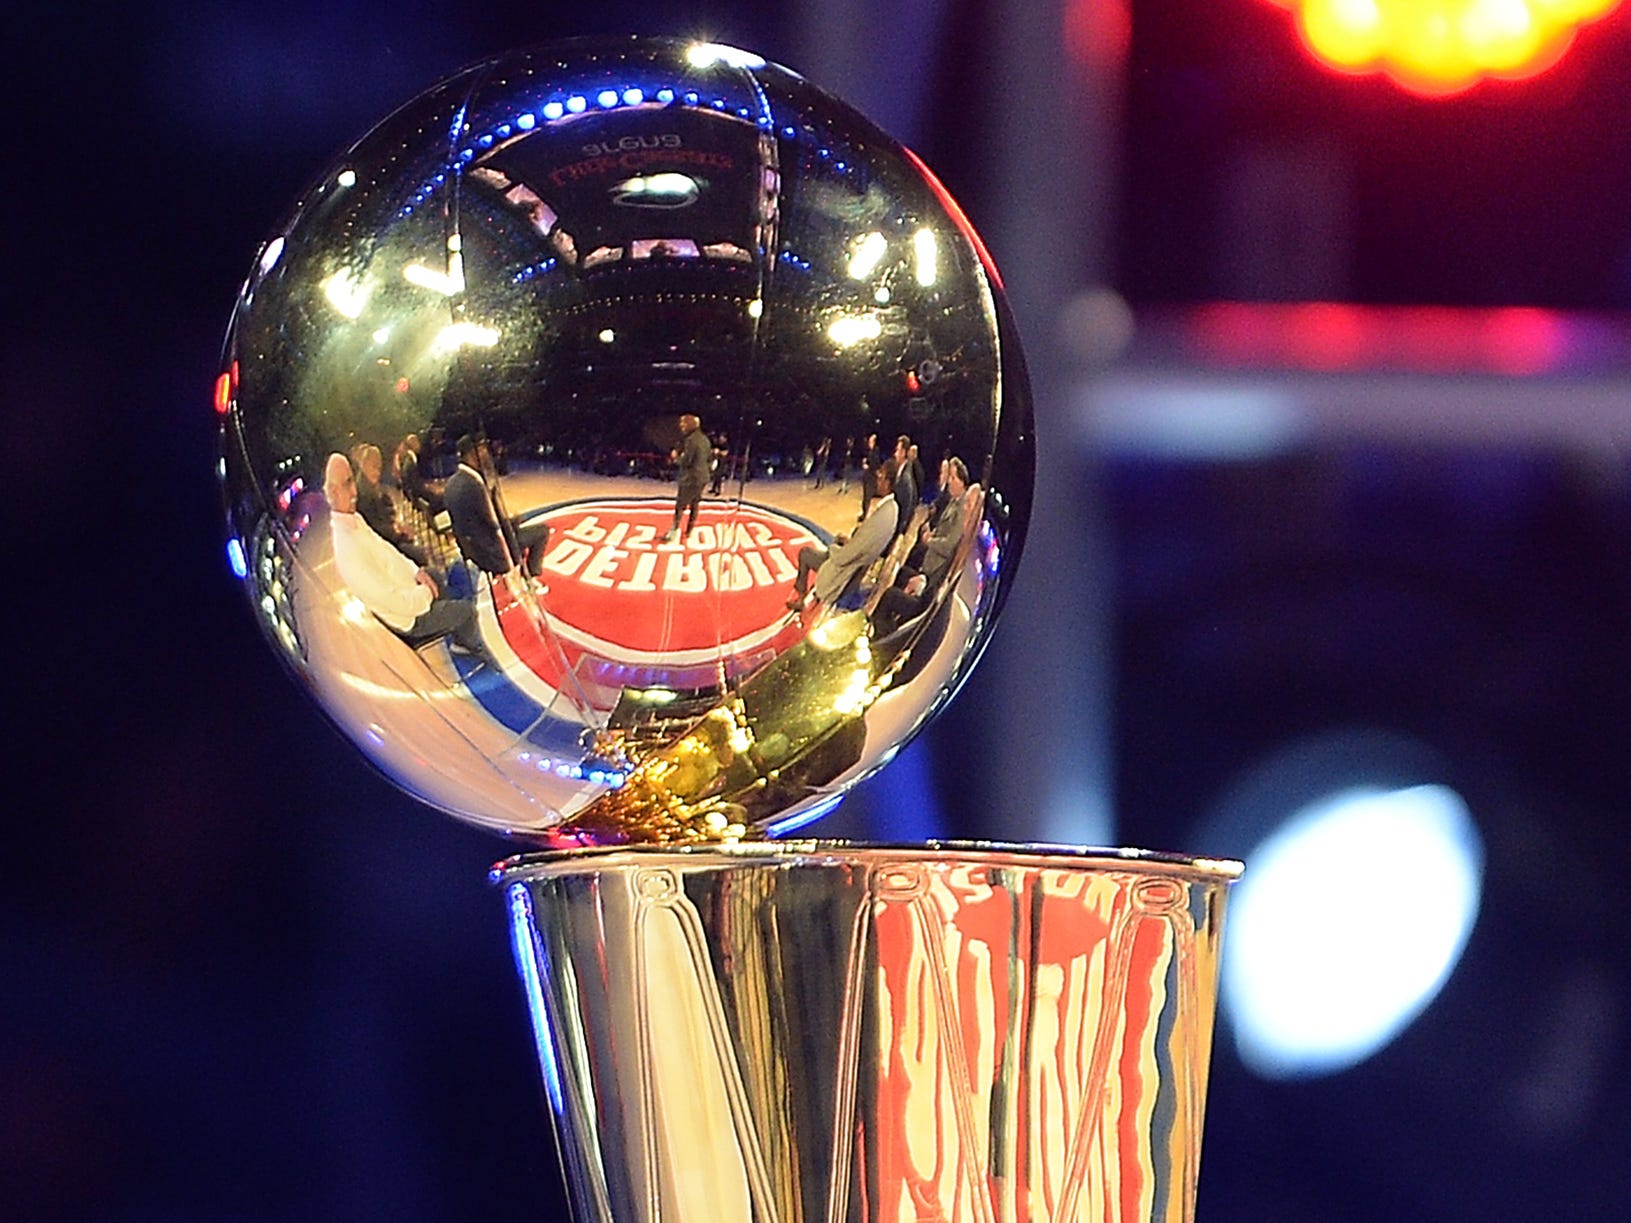 Former Piston Chauncey Billups is reflected in the 2004 Championship trophy during a halftime cermony that honored the team.